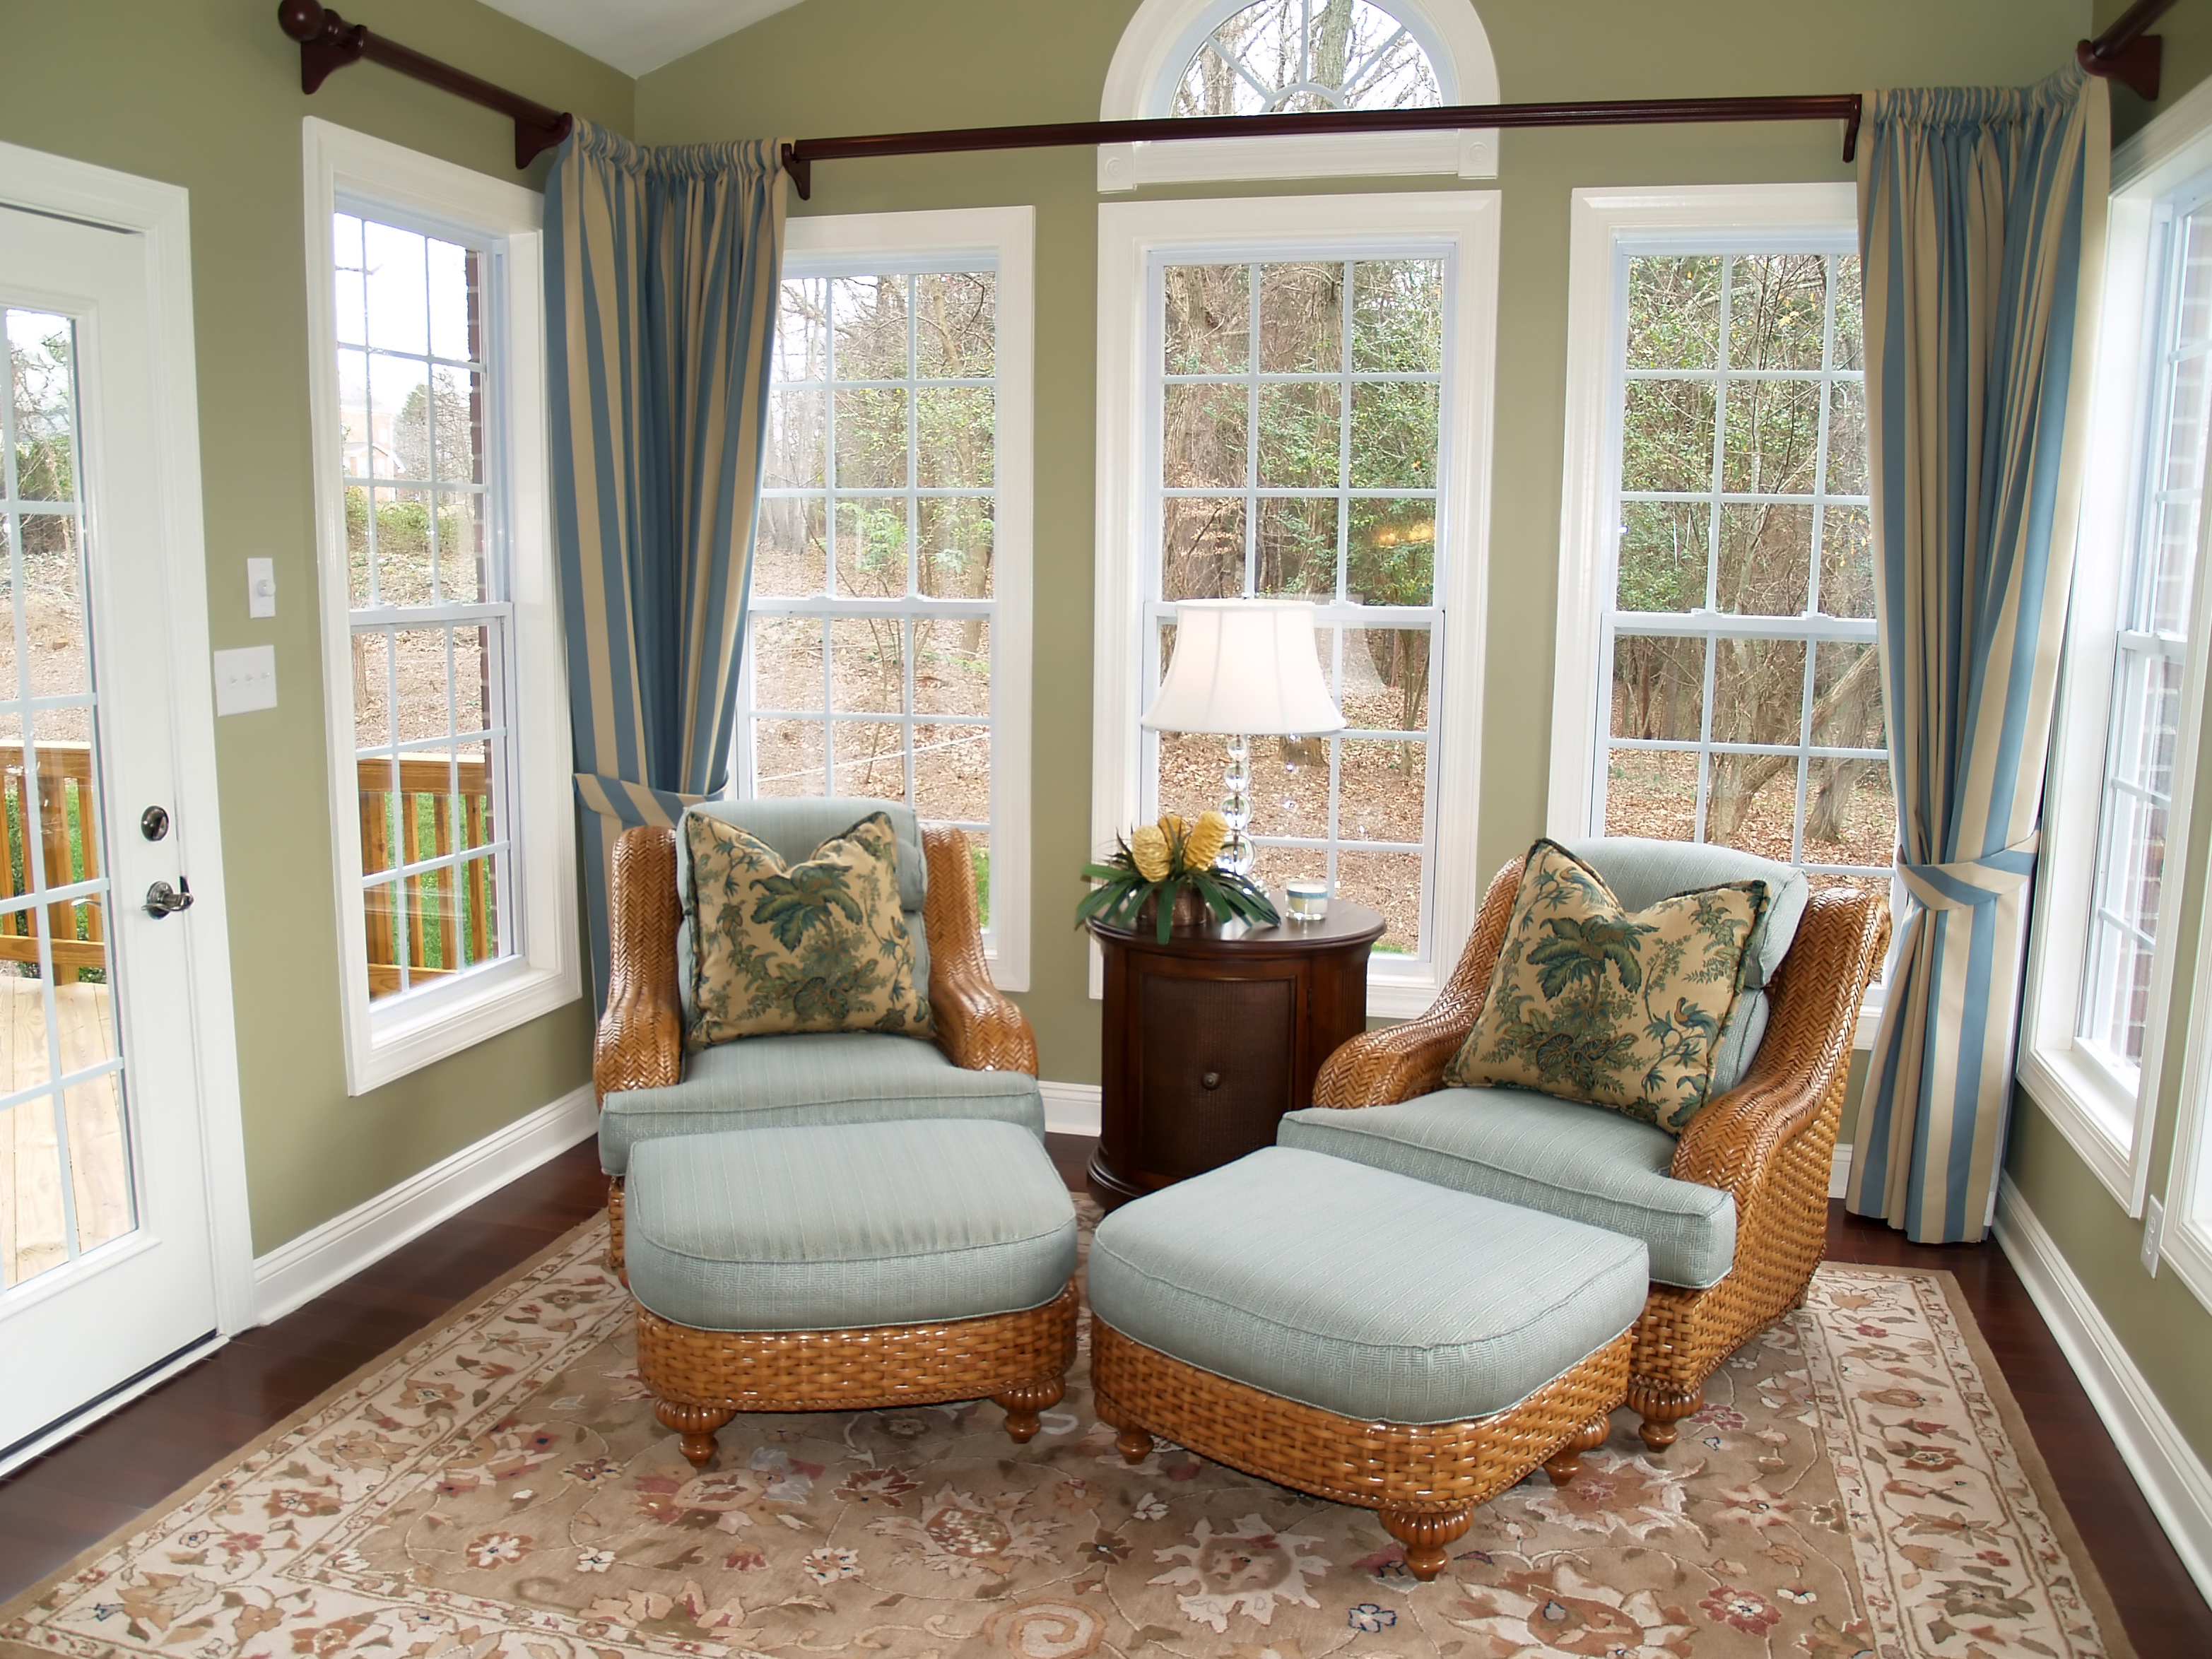 Two comfortable rattan or wicker chairs in a nicely decorated luxury sunroom